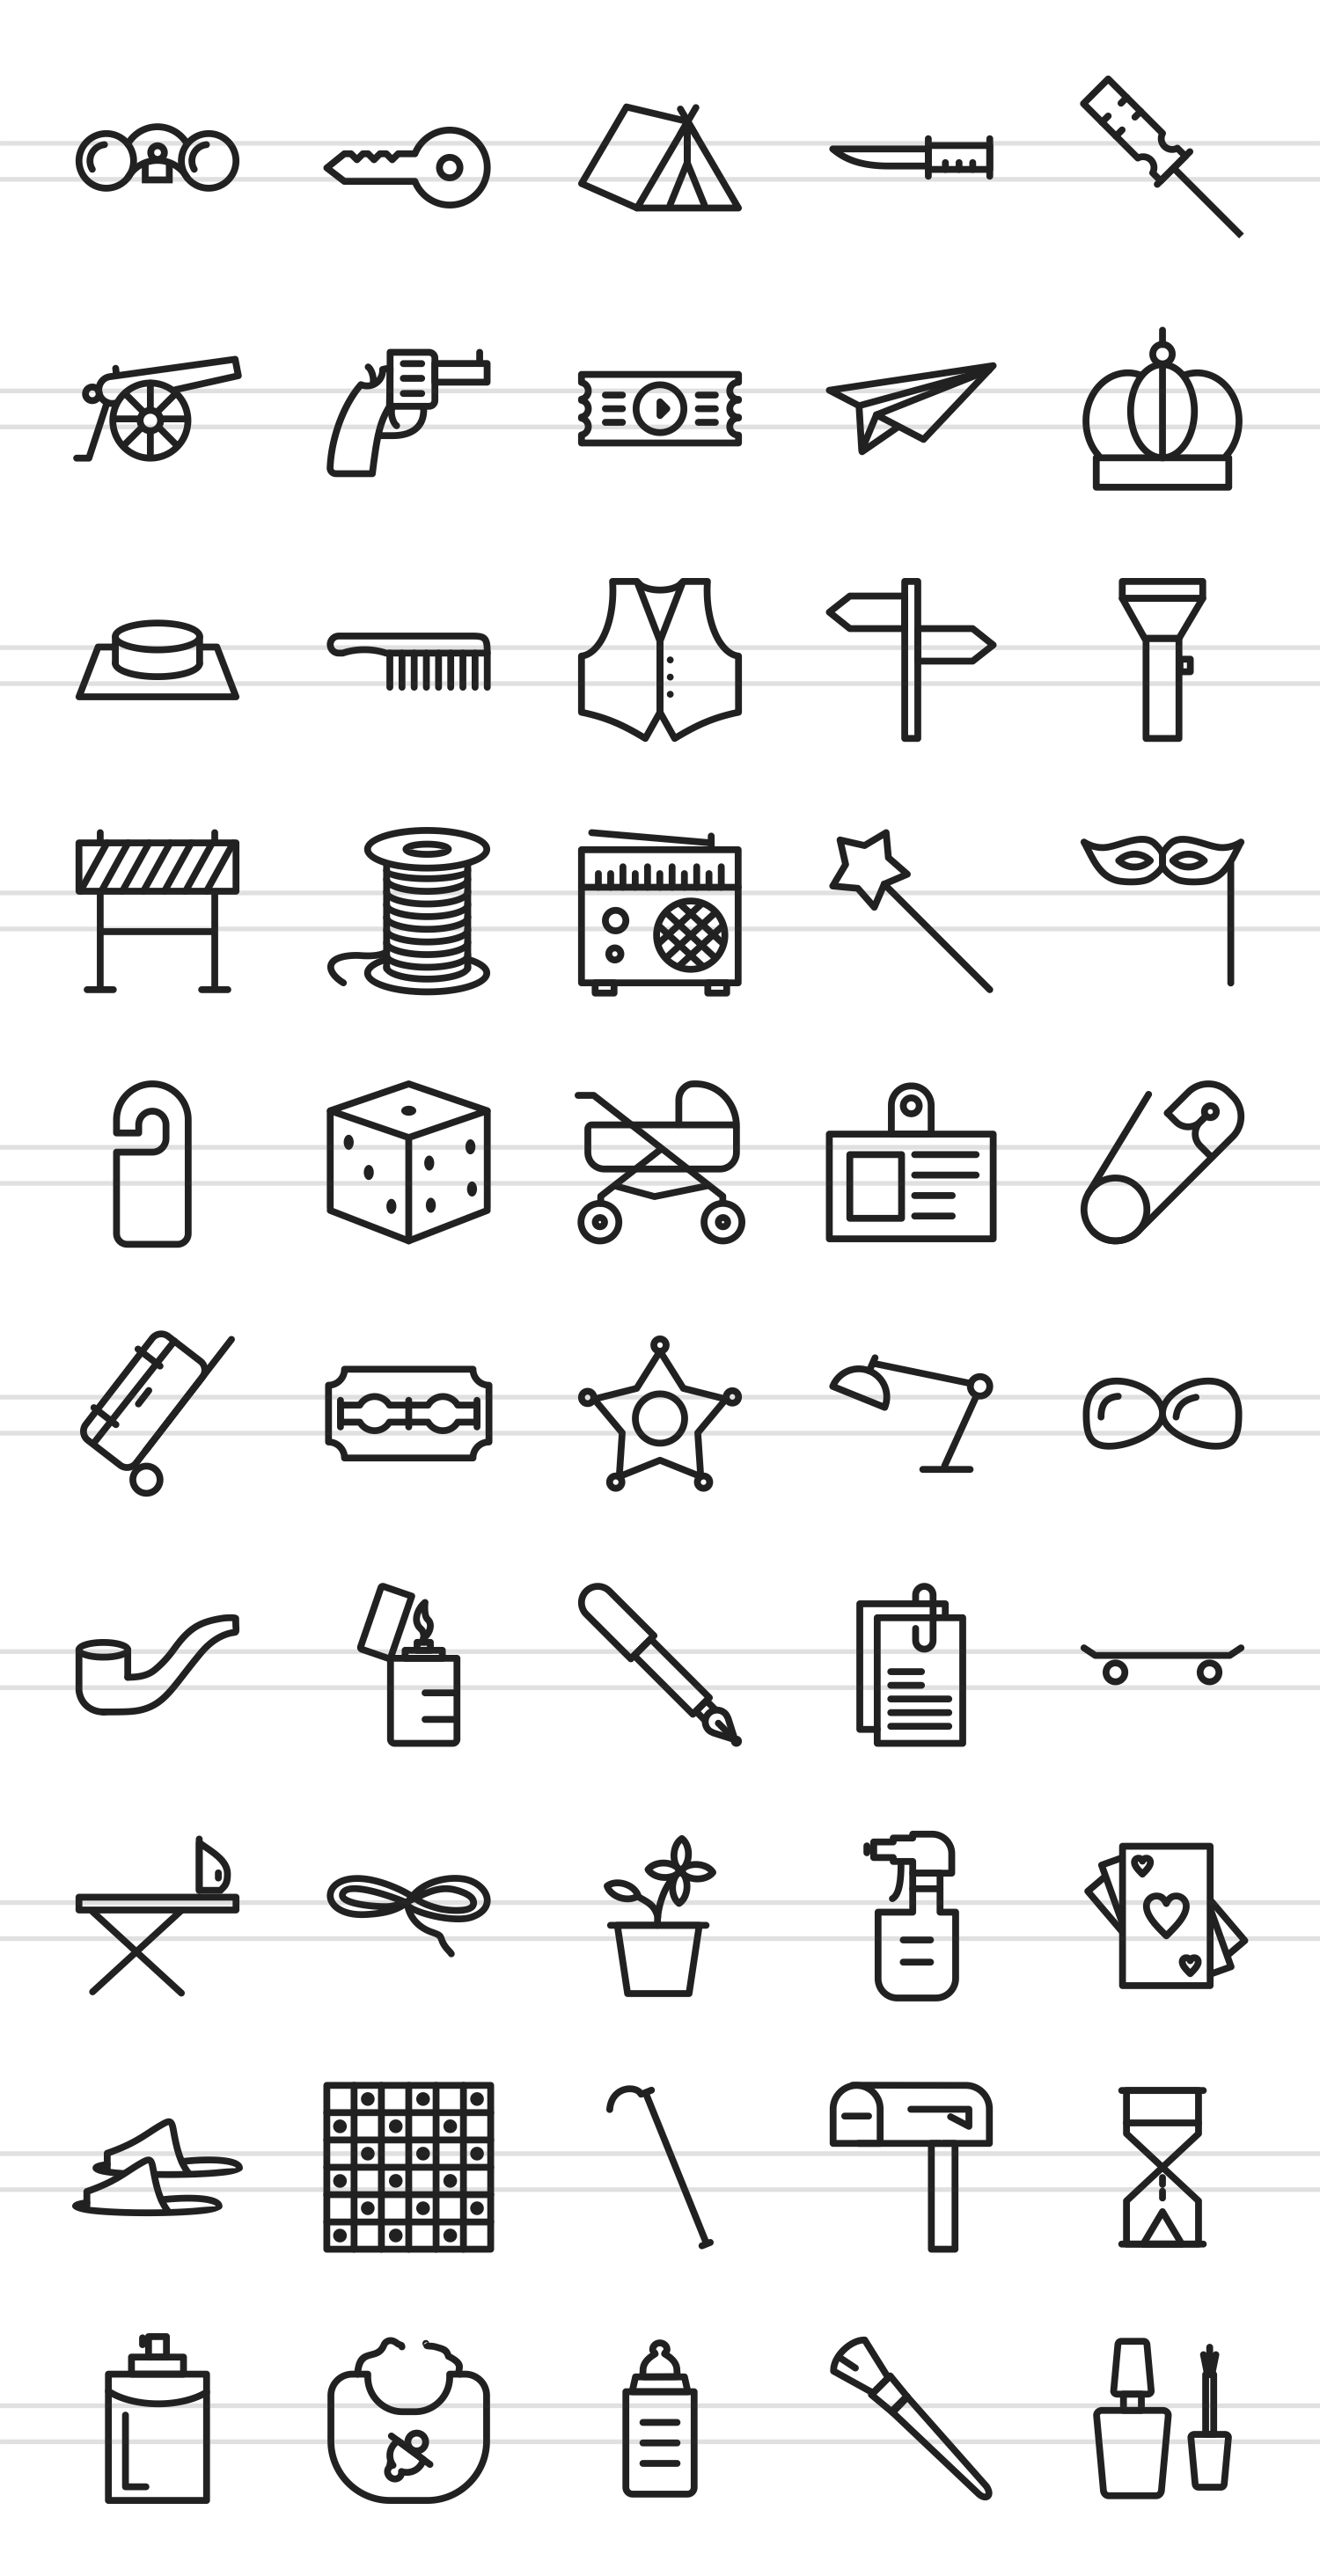 50 Objects Line Icons example image 2